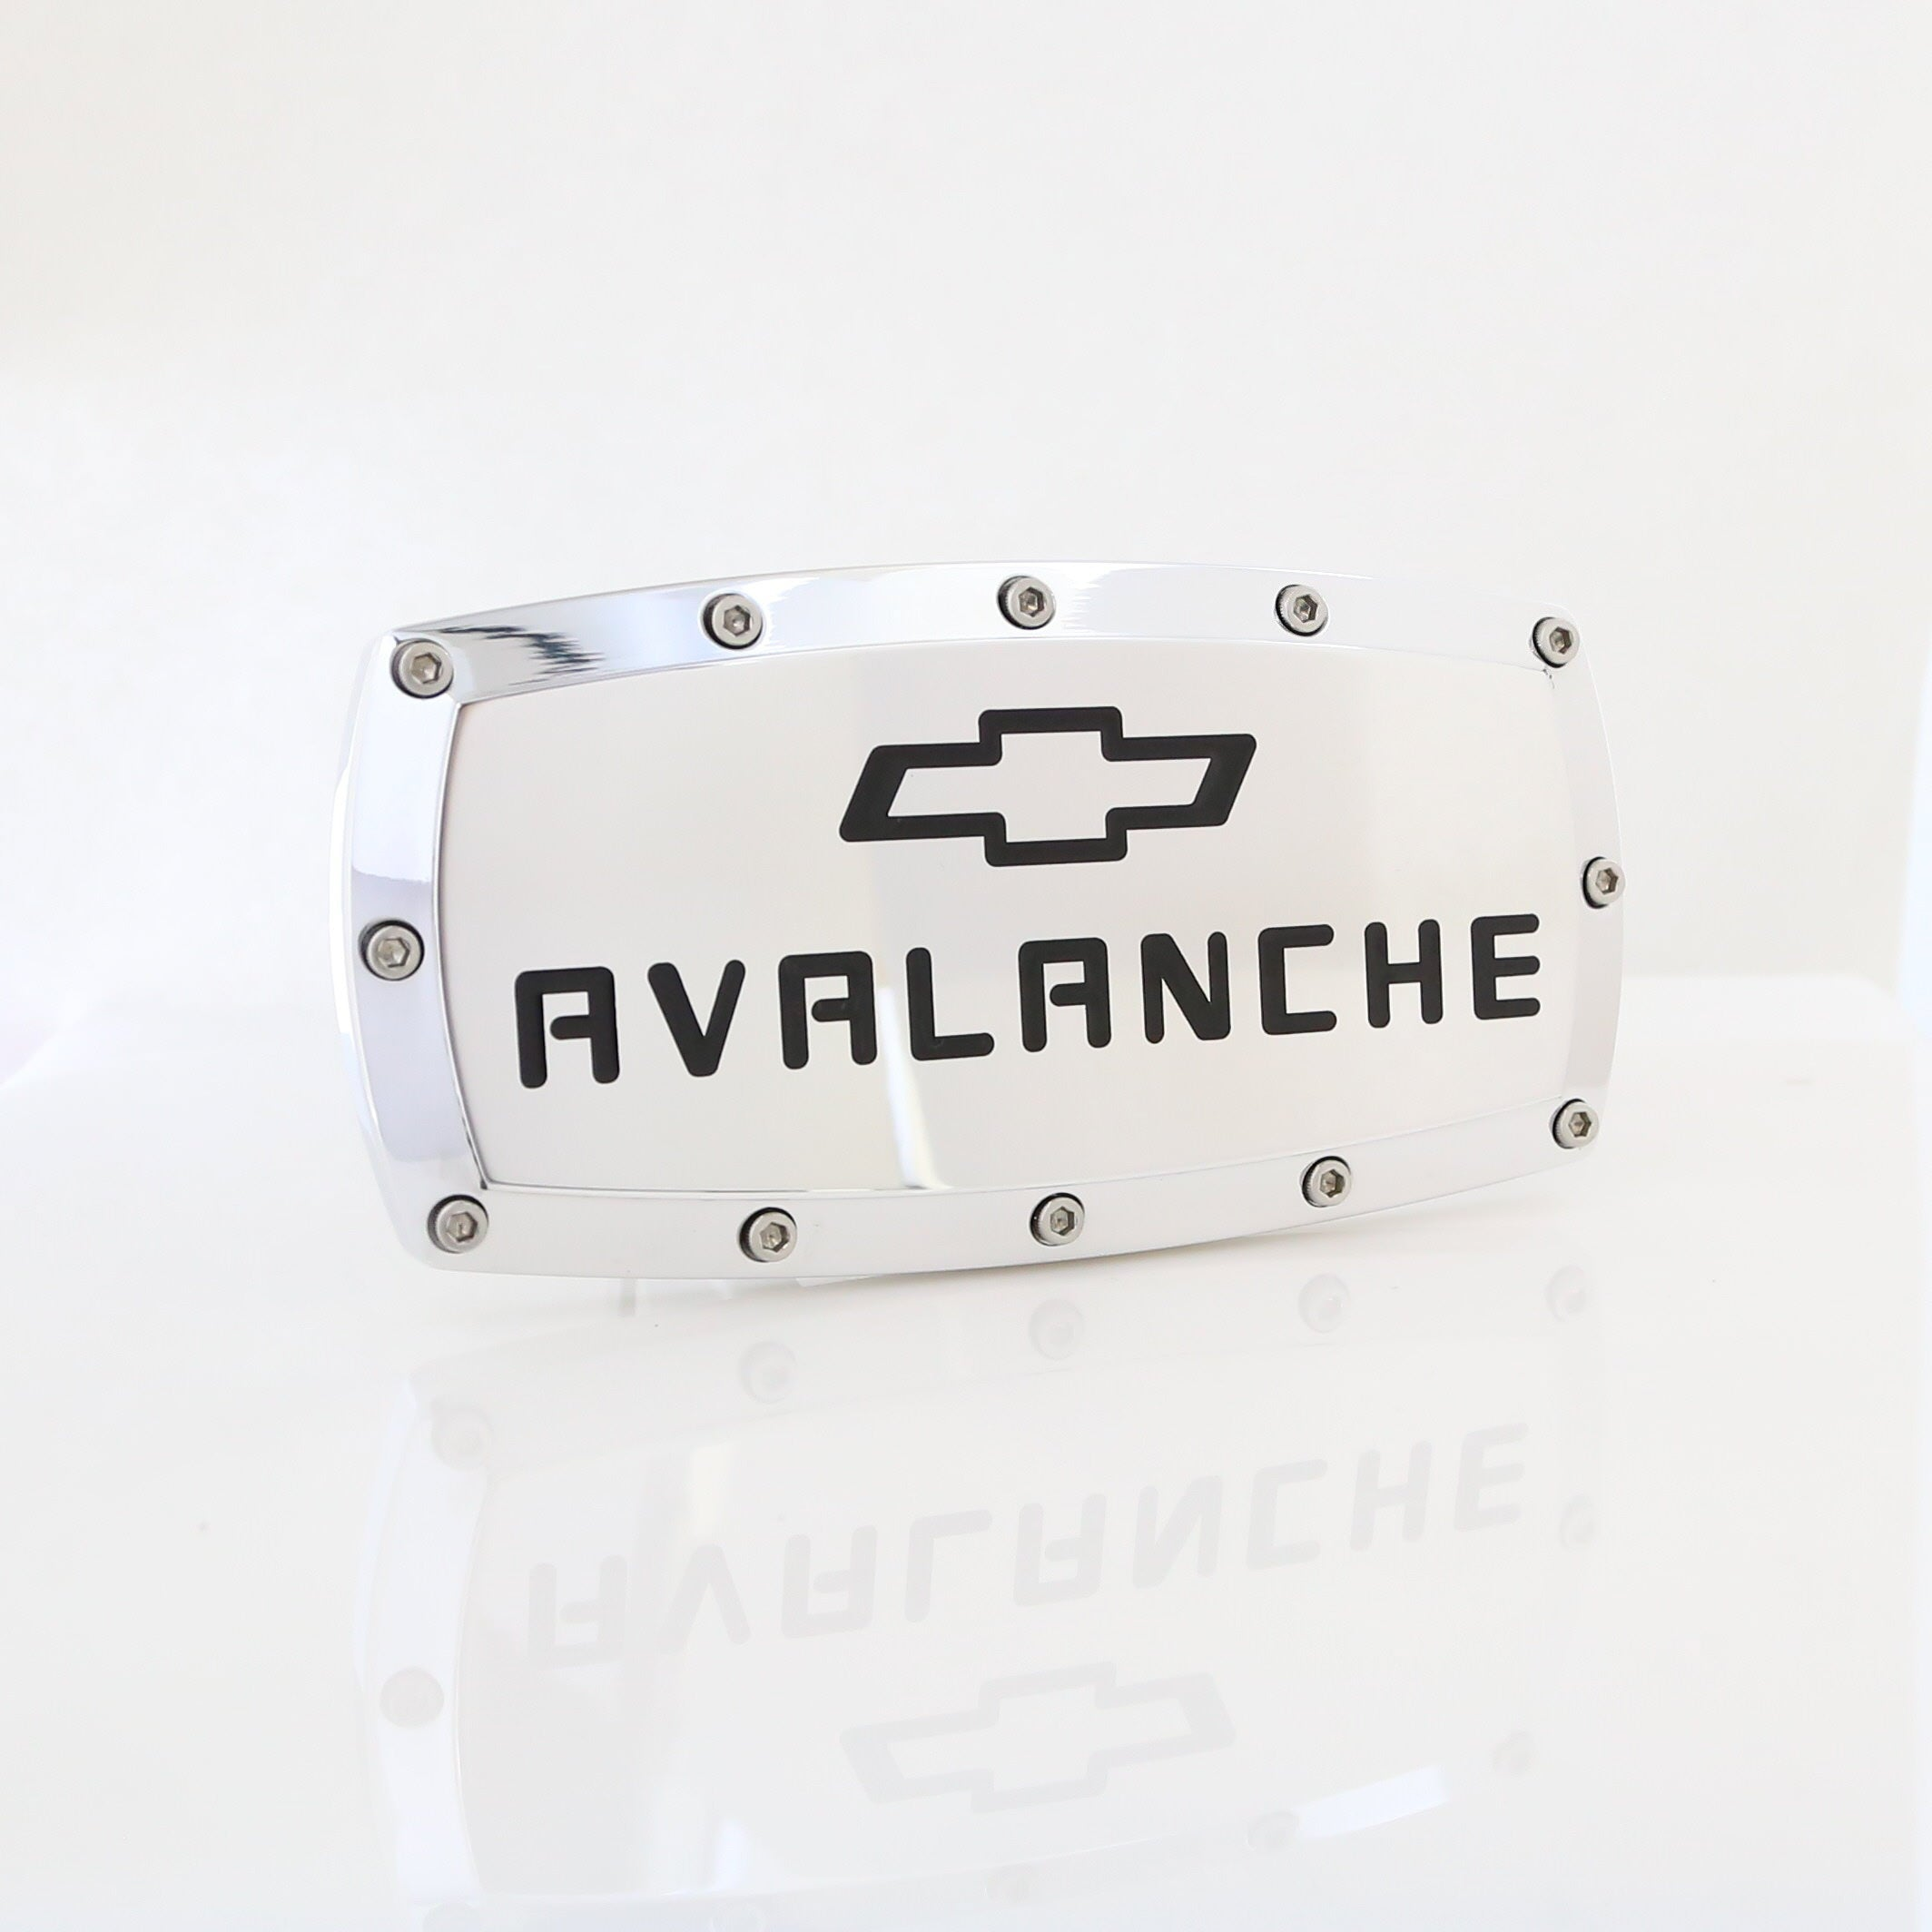 Chevy Avalanche Hitch Cover